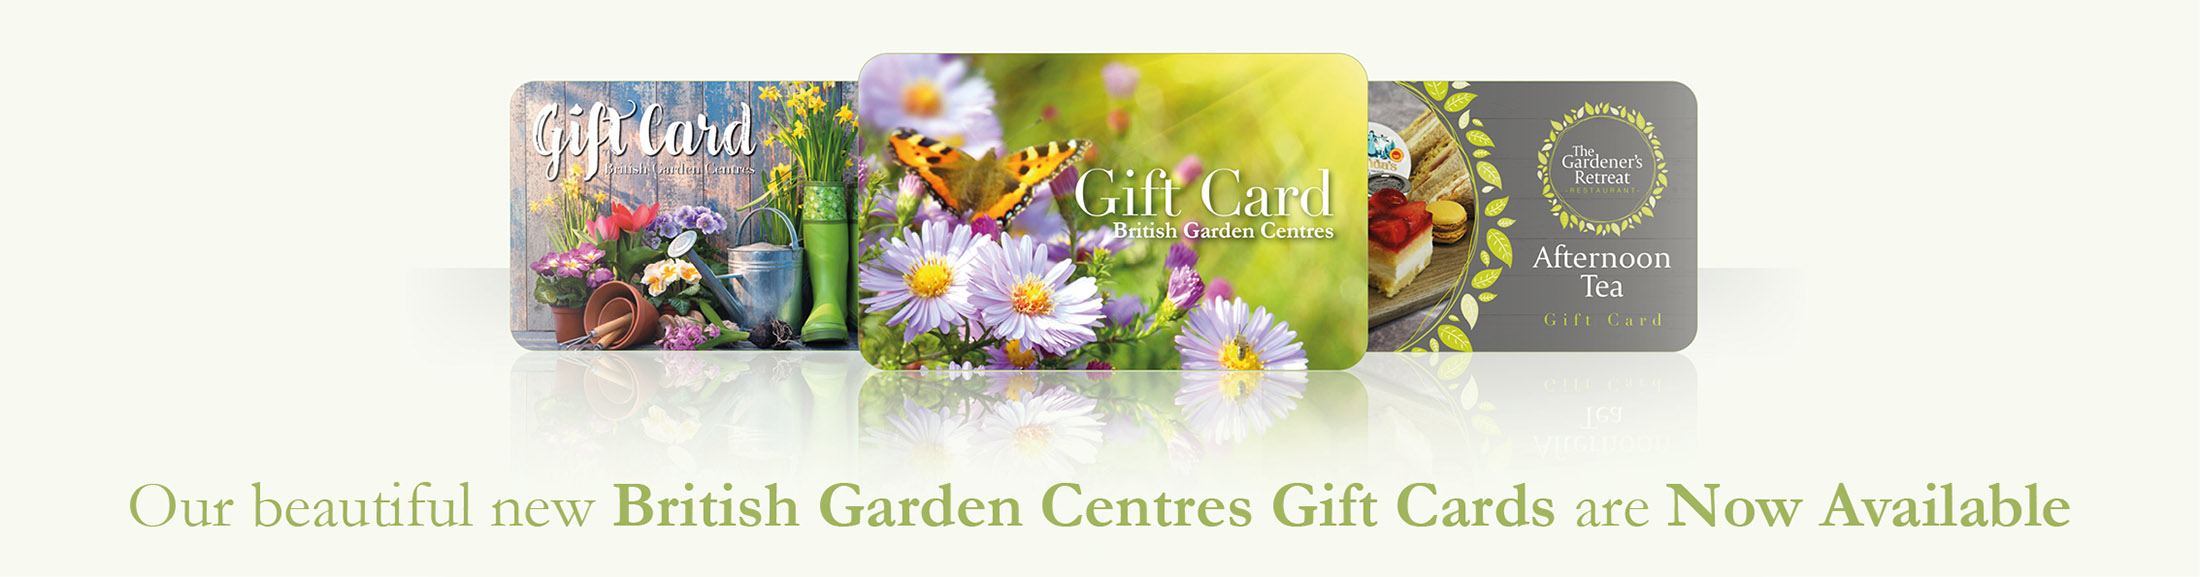 Gift Cards at Brigg Garden Centre